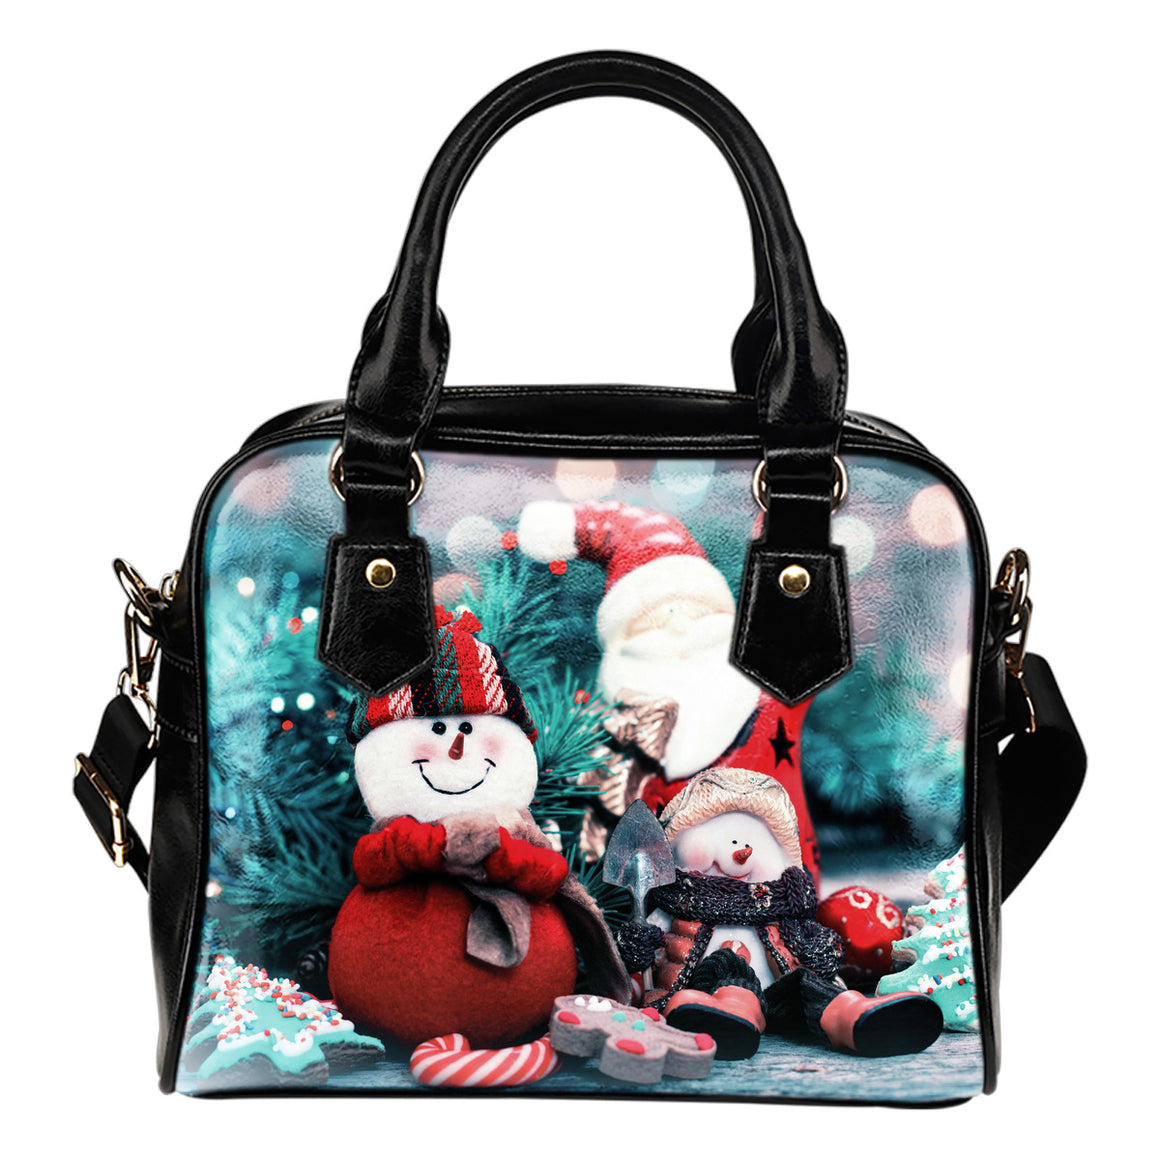 Merry CHRISTMAS Shoulder Bag